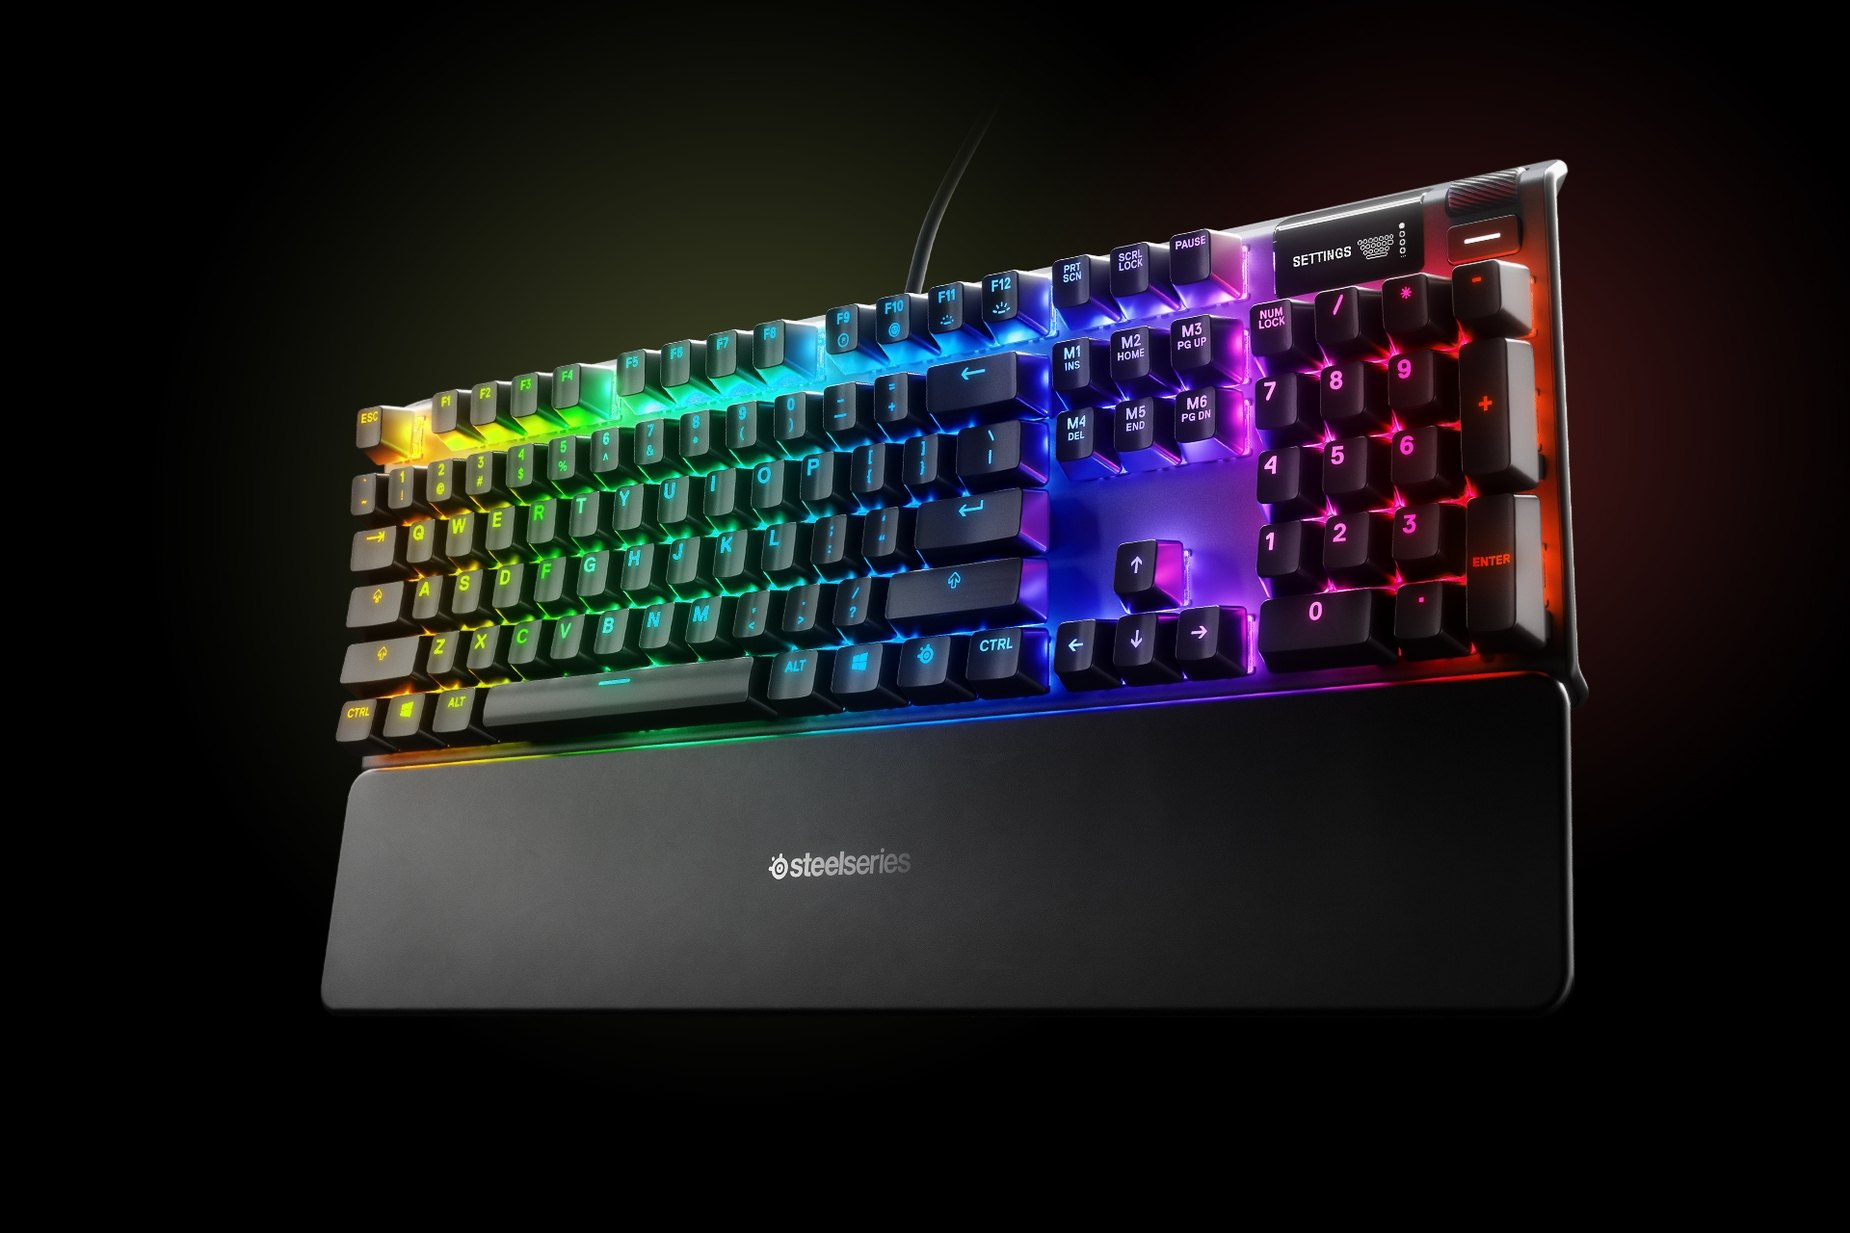 Thai-Apex 7 (Red Switch) gaming keyboard with the illumination lit up on dark background, also shows the OLED screen and controls used to change settings and adjust audio